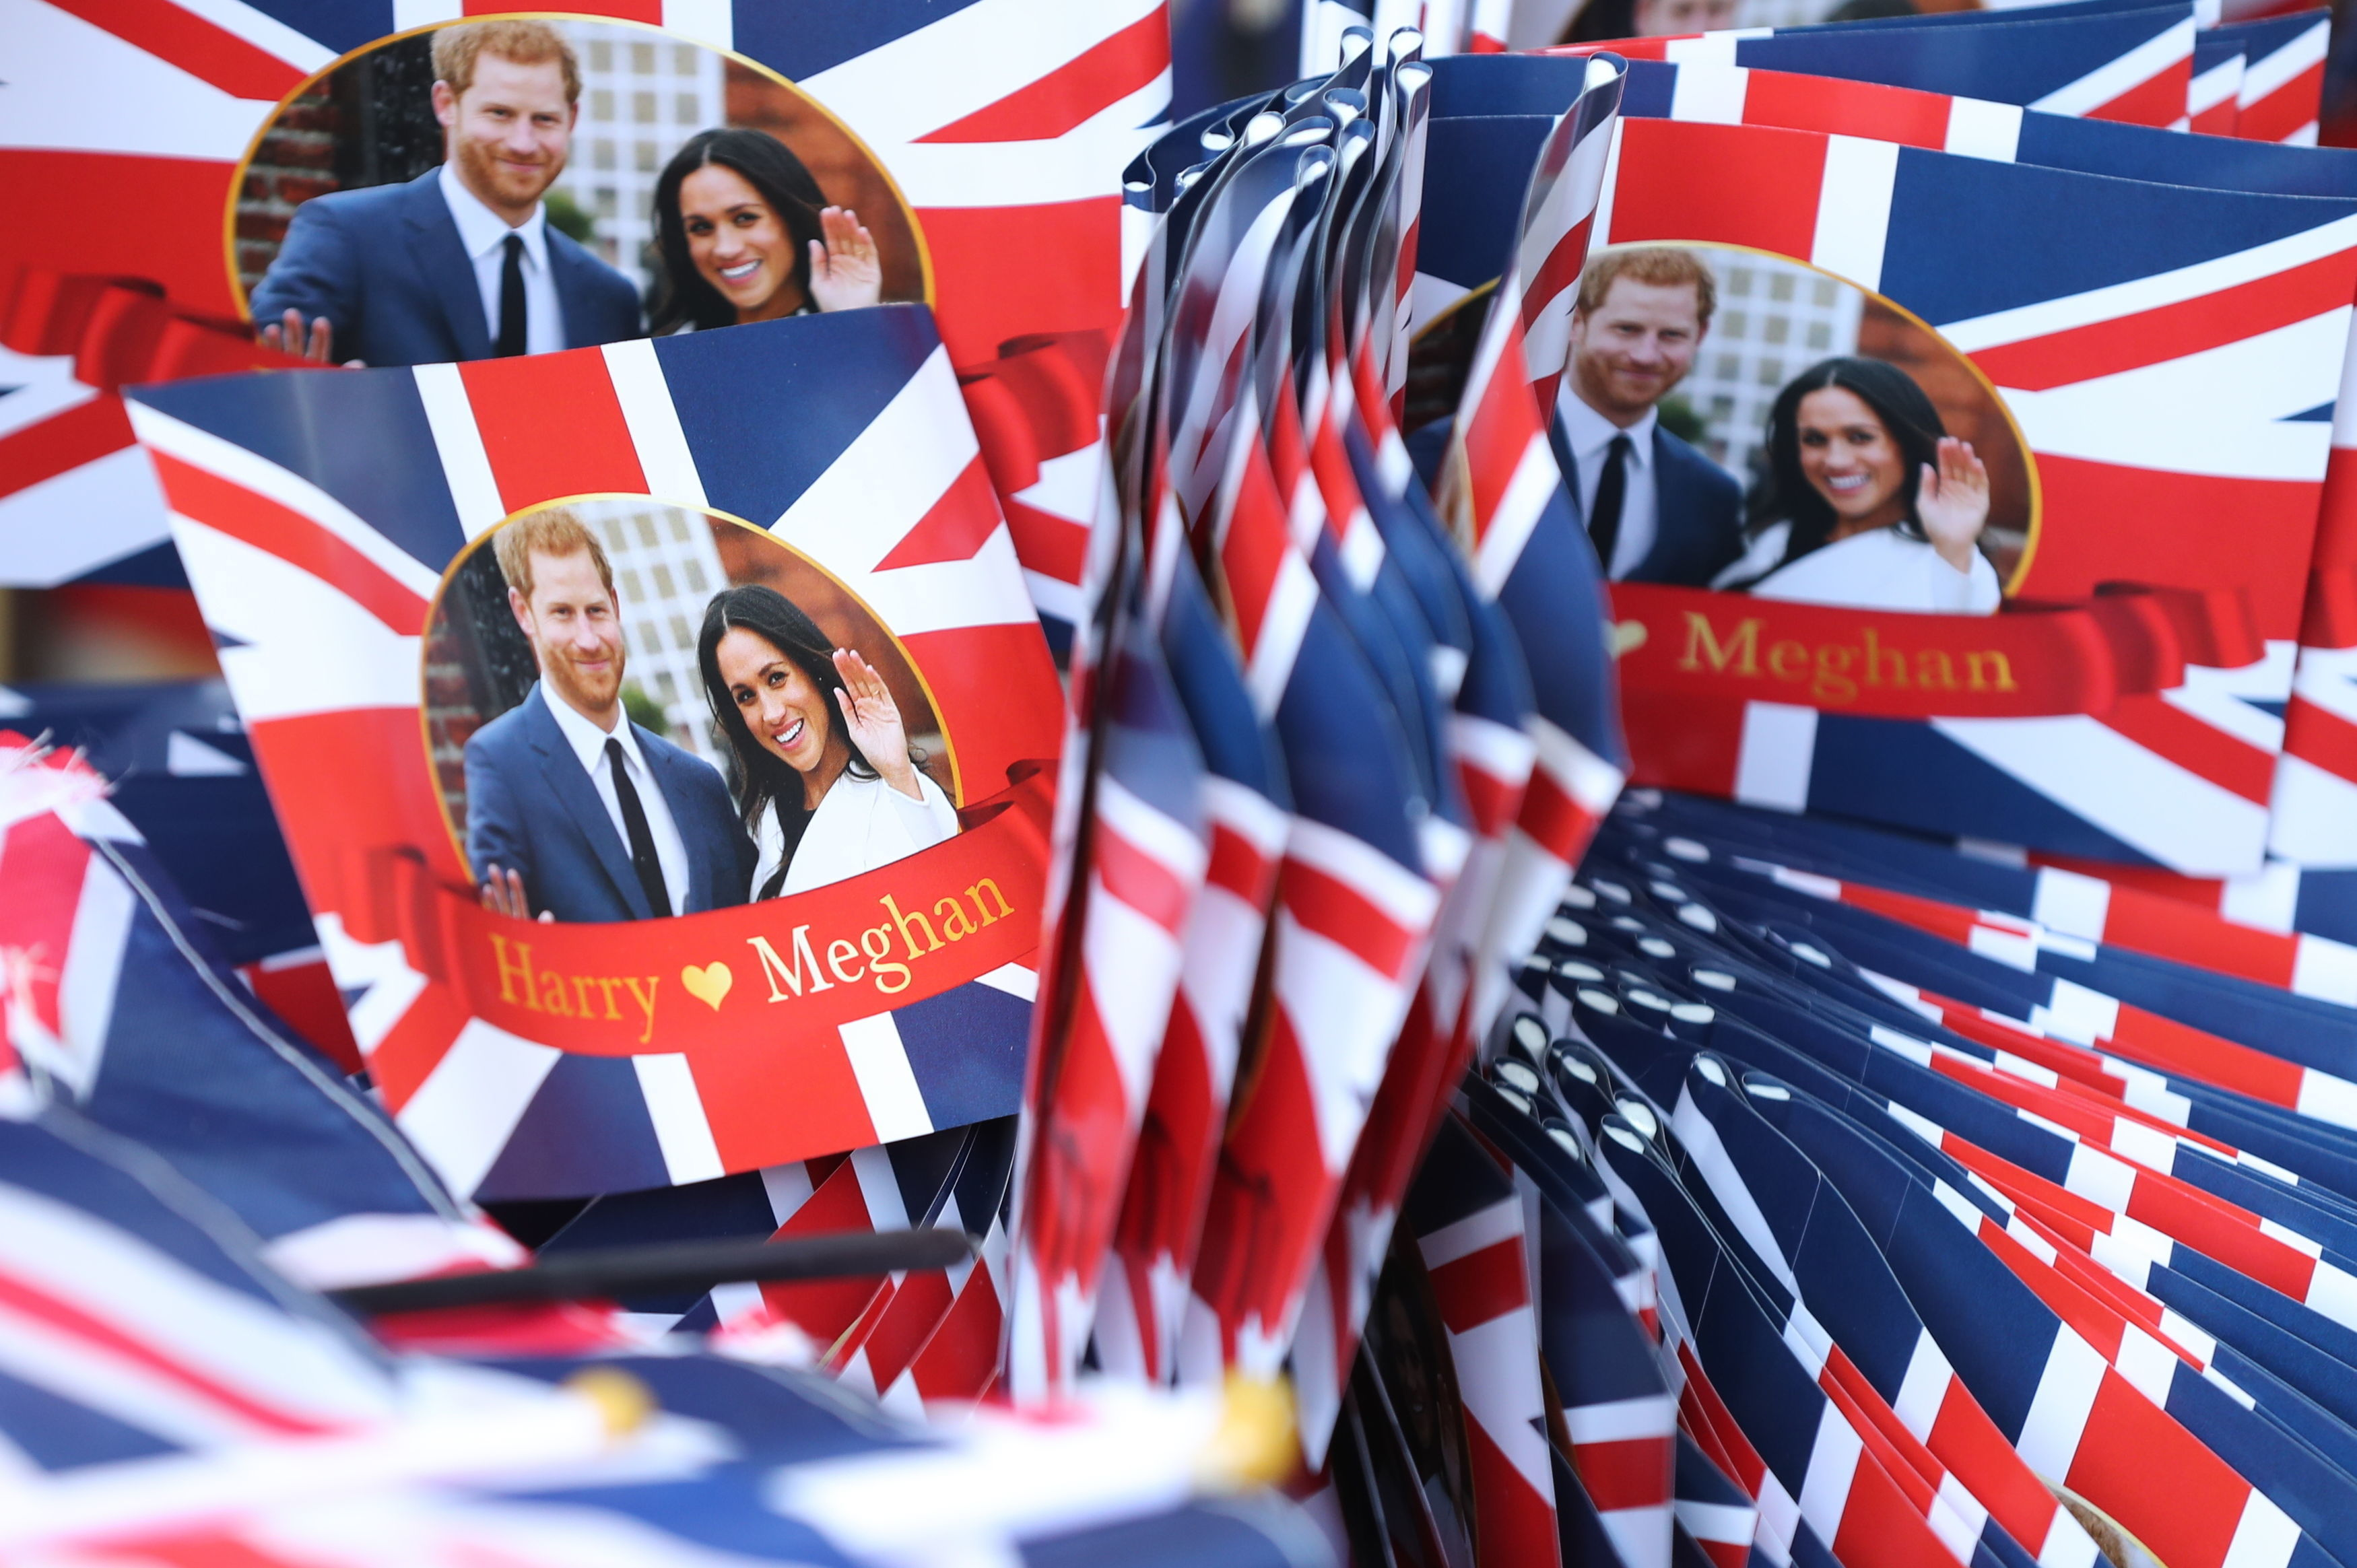 Souvenirs in Windsor ahead of the wedding of Prince Harry and Meghan Markle